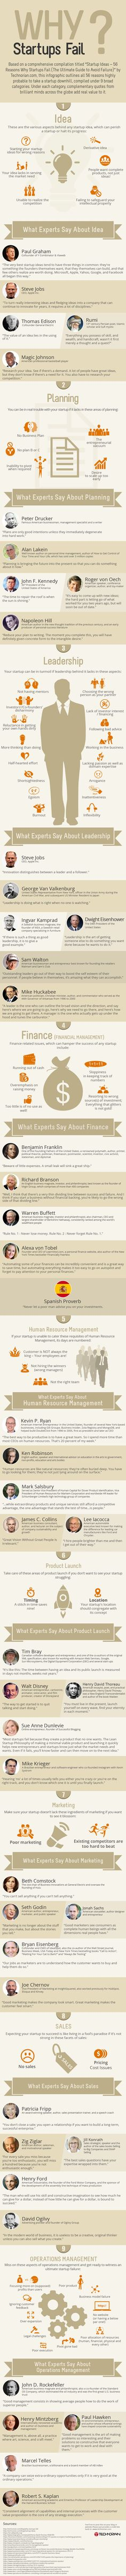 Why Startups Fail #Infographic